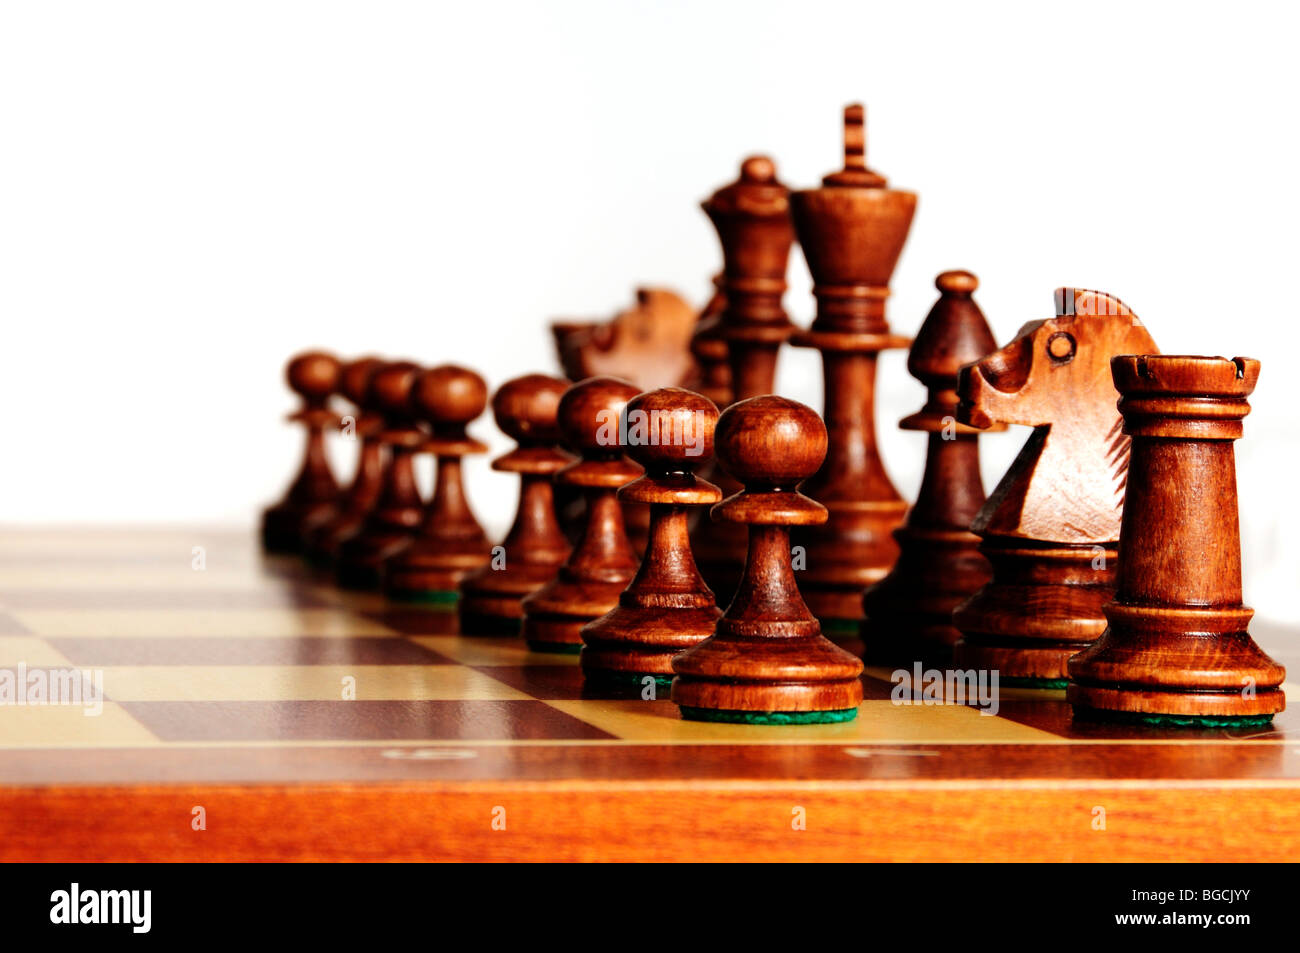 black chess pieces on a chessboard in starting position - Stock Image